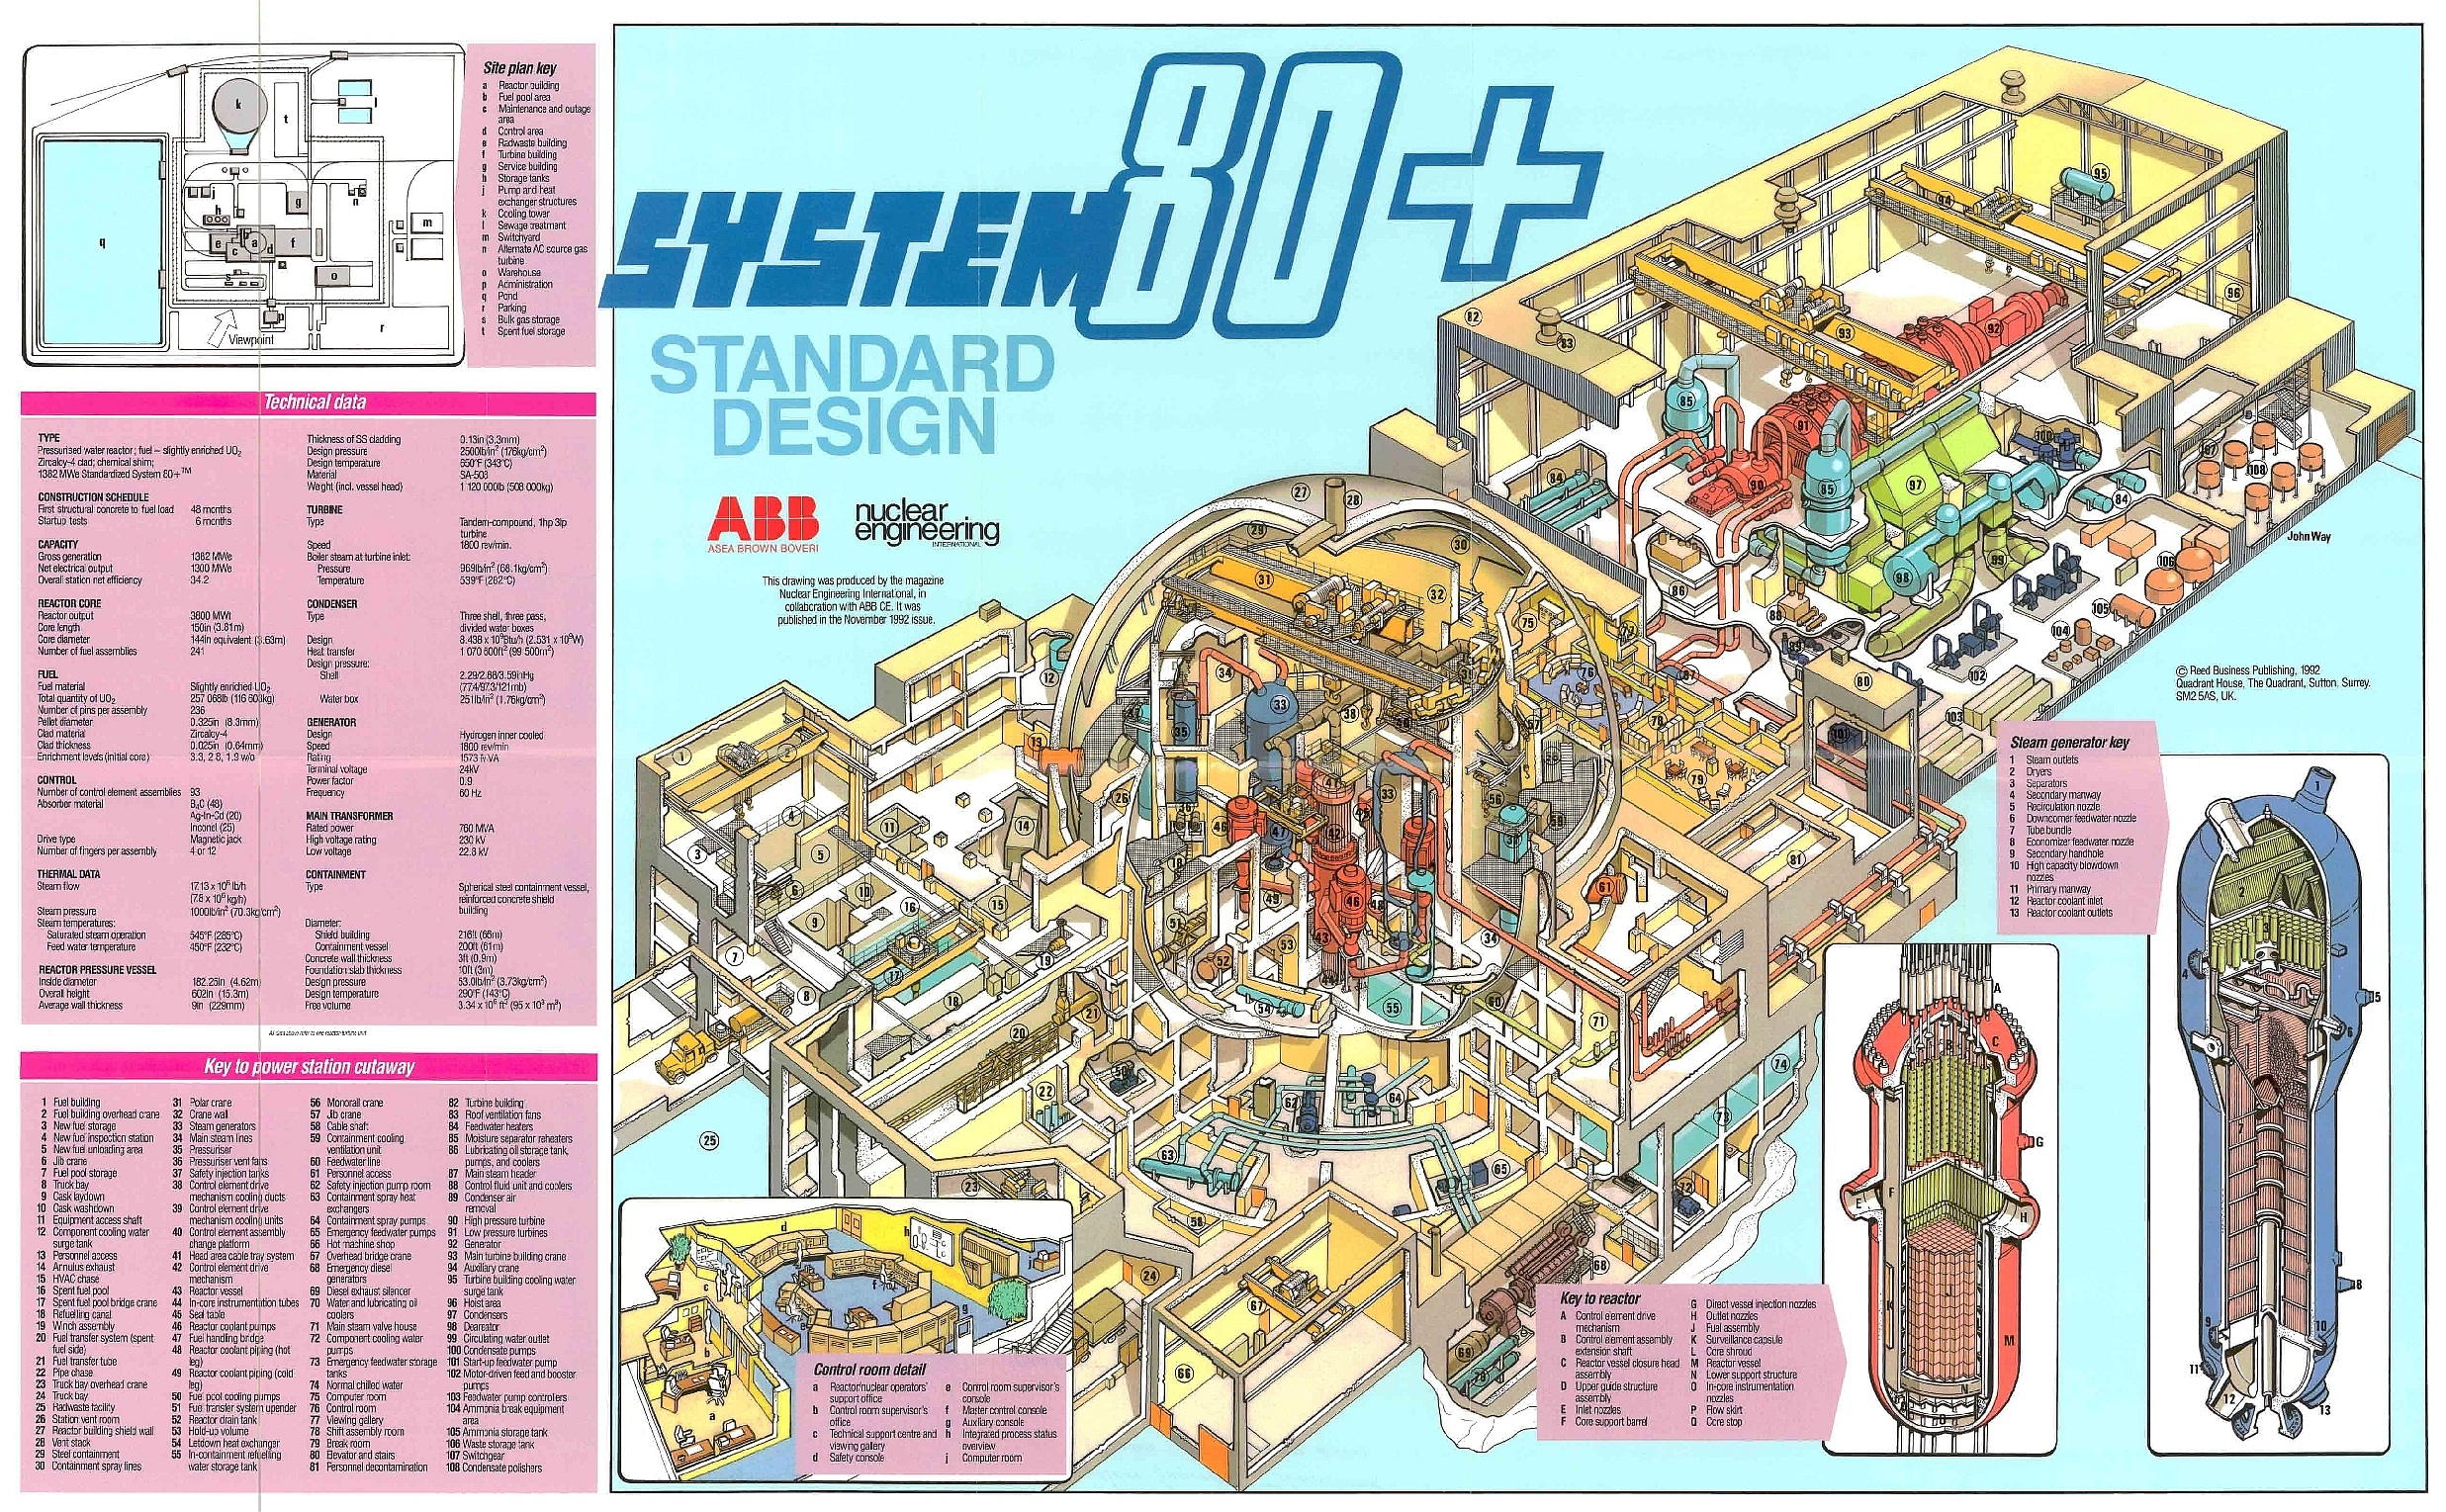 Title System 80+ Yongwang 3 & 4 Creator Nuclear Engineering International Subject Nuclear reactors -- Drawings Description The World's Reactors, No. 97,System 80+ [e.g. Yongwang 3 & 4], USA. Wall chart insert, Nuclear Engineering, 1992